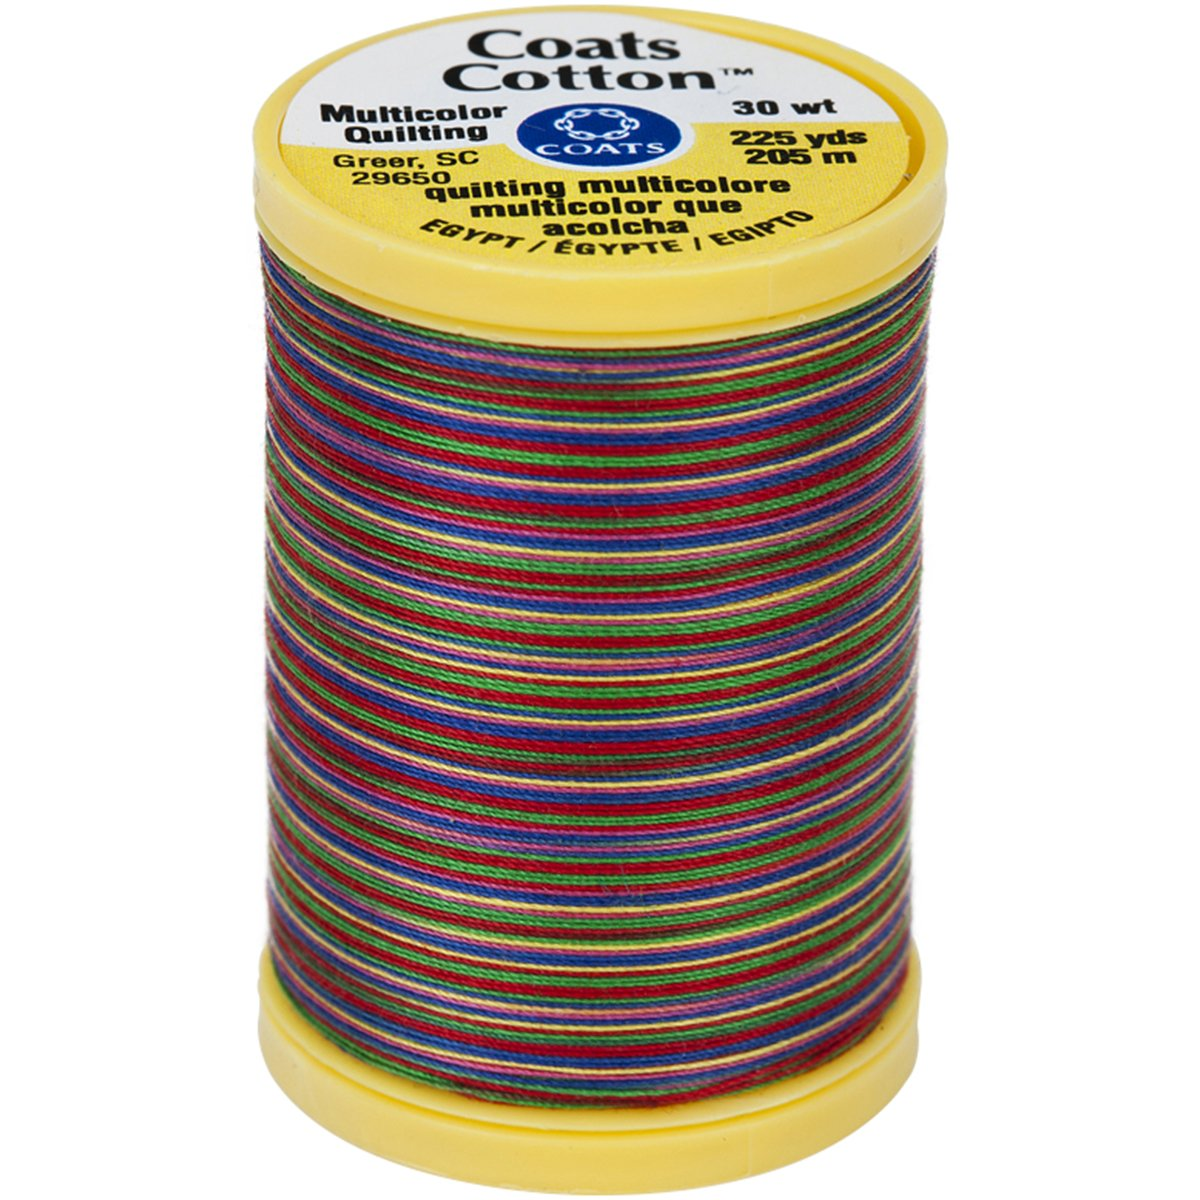 Coats Thread & Zippers Coats Cotton Machine Over the Rainbow Quilting Thread, 225 yd, Multicolor S972-0813